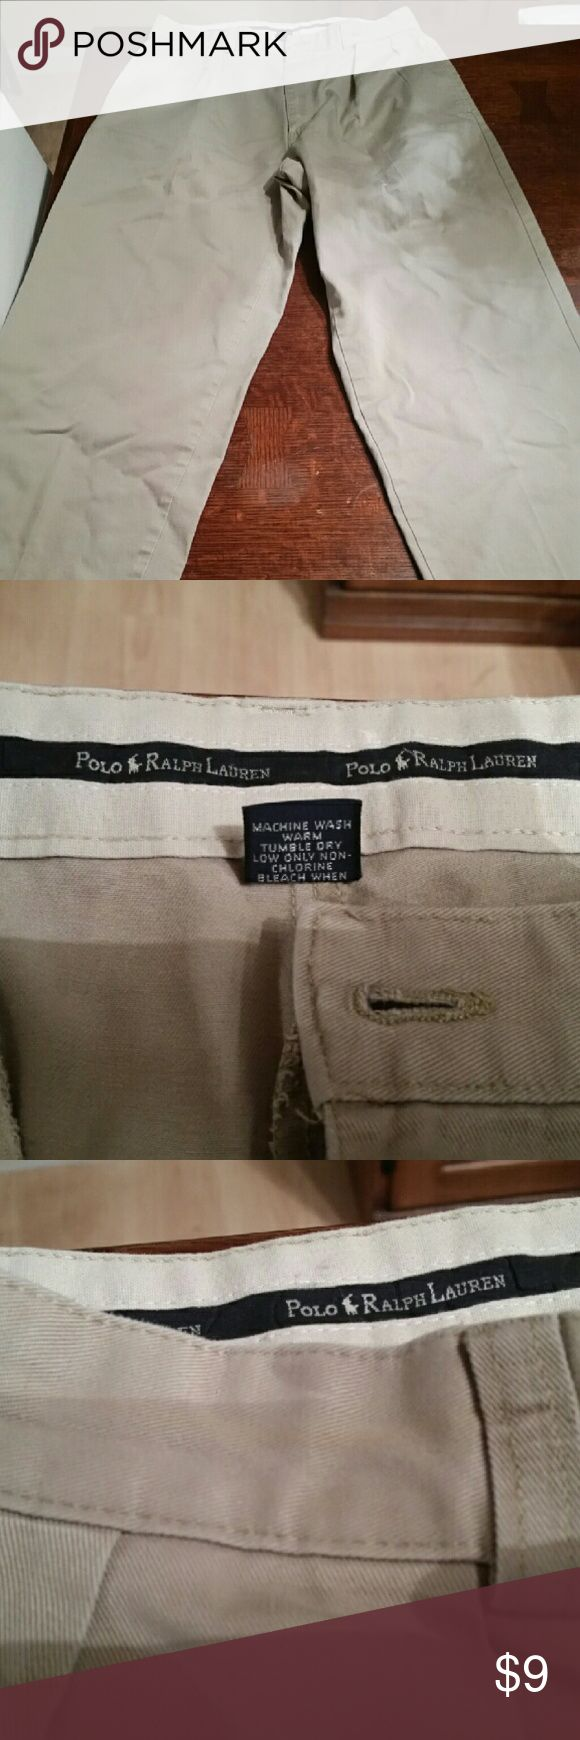 Polo Ralph Lauren Pleated Chinos 32x30 Really nice pair of Polo Ralph Lauren Pleated Chinos. There is a slight discoloration around the waist from a belt being worn with the pants but other than that, they are in excellent condition.  Pants are 100% cotton. Polo by Ralph Lauren Pants Chinos & Khakis